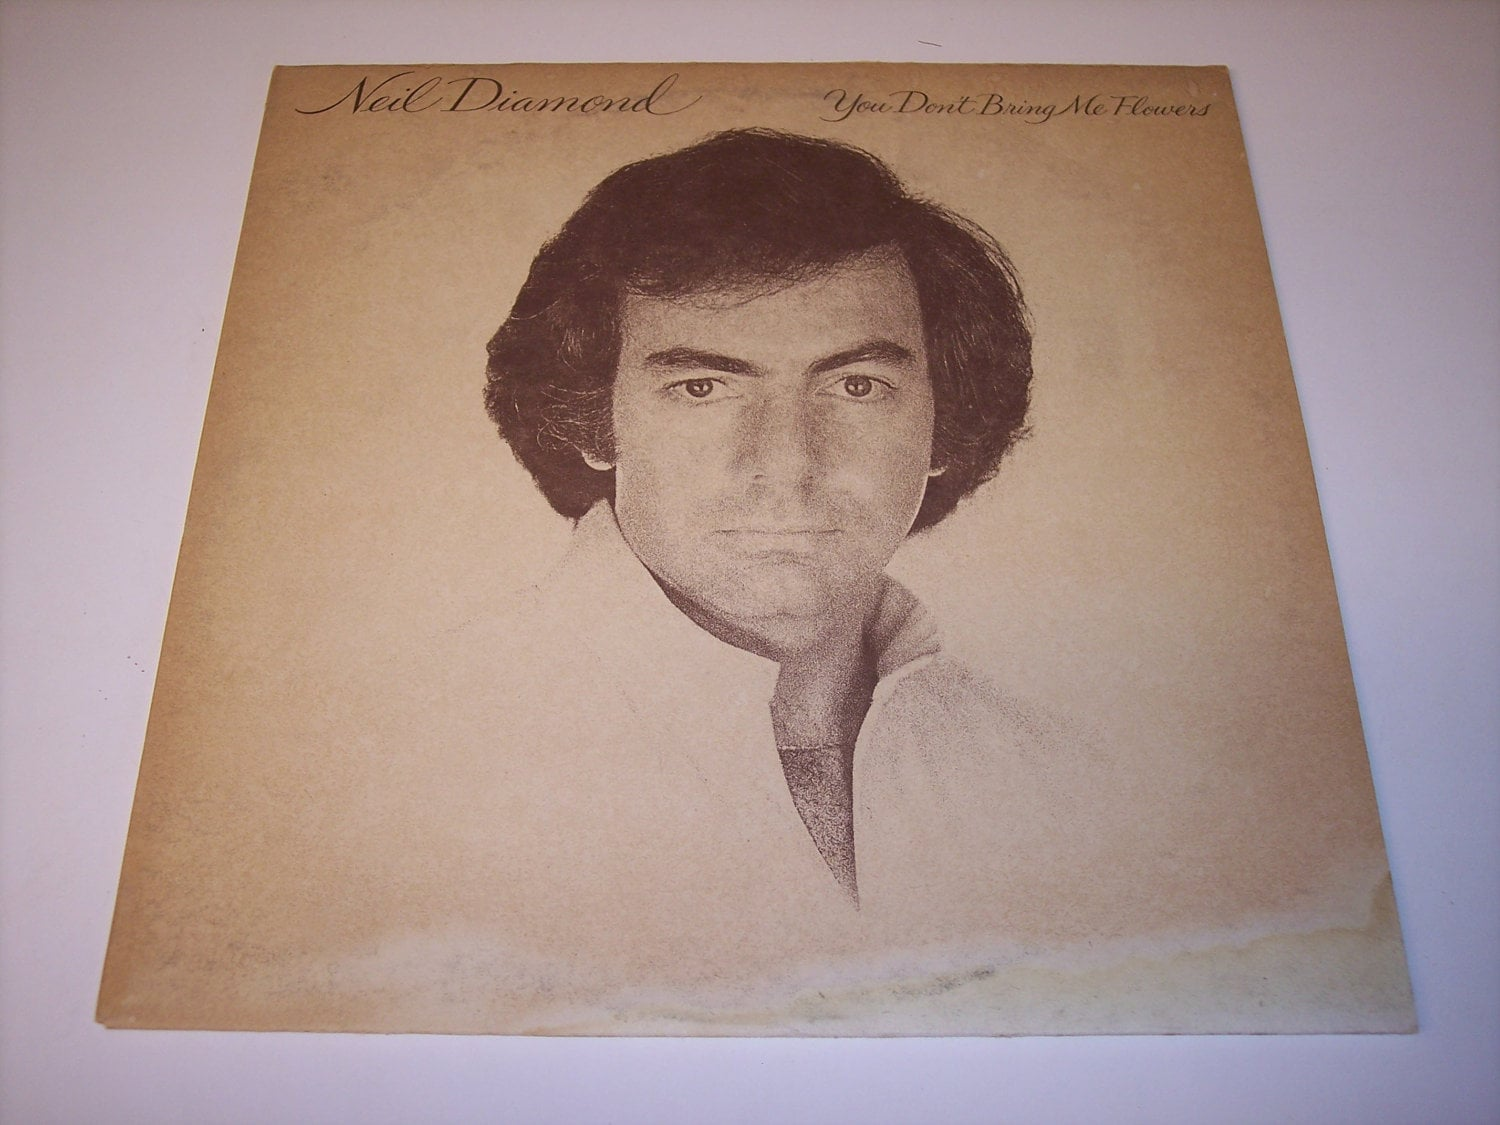 Vintage Neil Diamond You Don t Bring Me Flowers LP vinyl